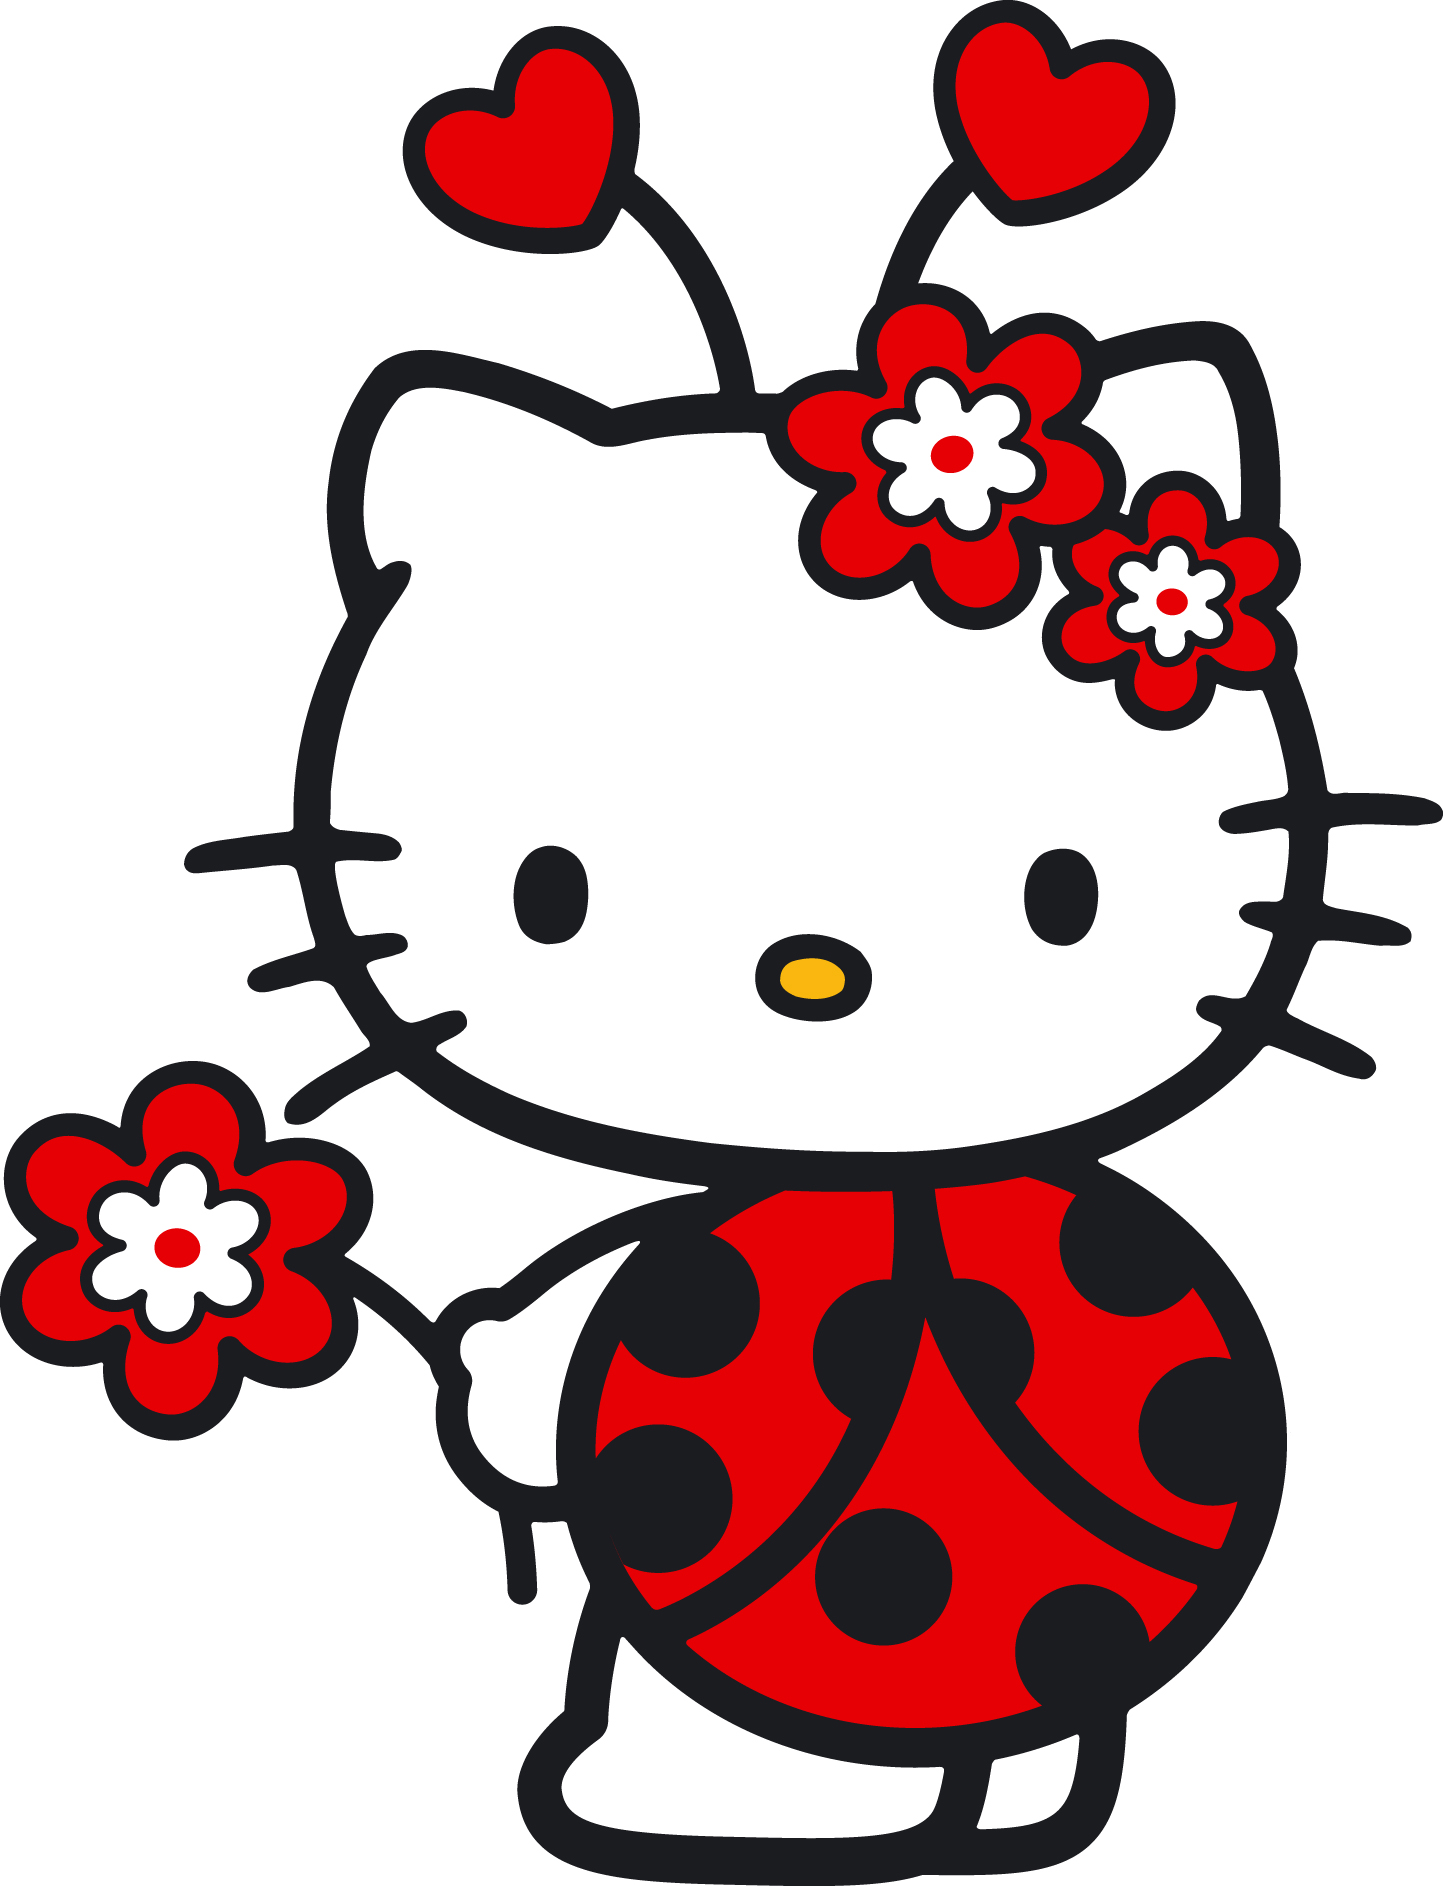 hello kitty happy birthday clipart at getdrawings com free for rh getdrawings com